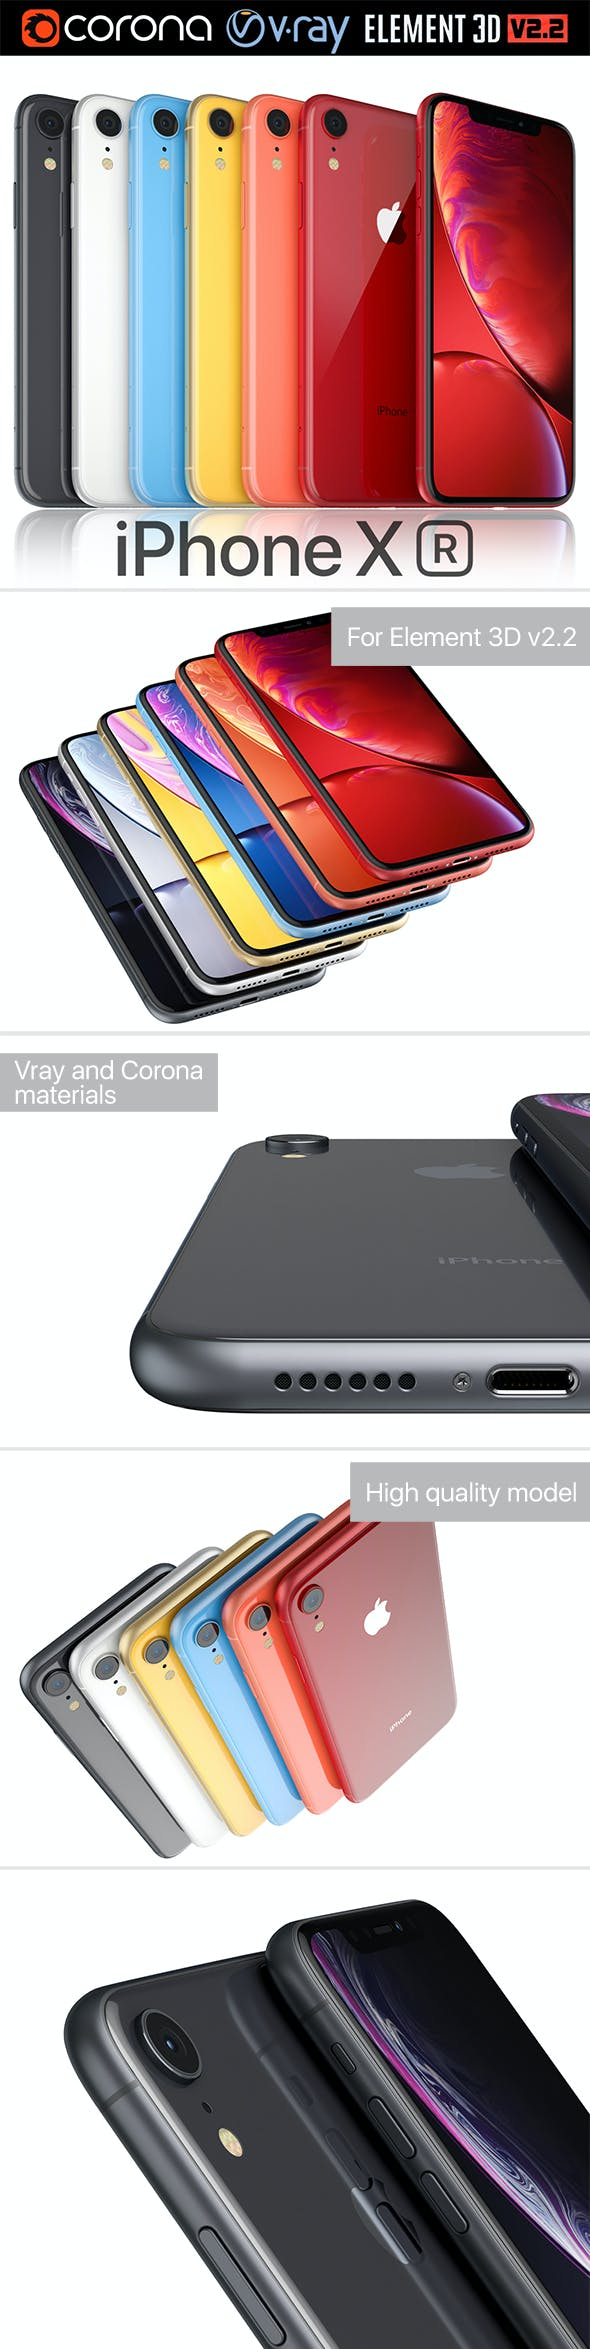 Apple iPhone Xr All colors - 3DOcean Item for Sale